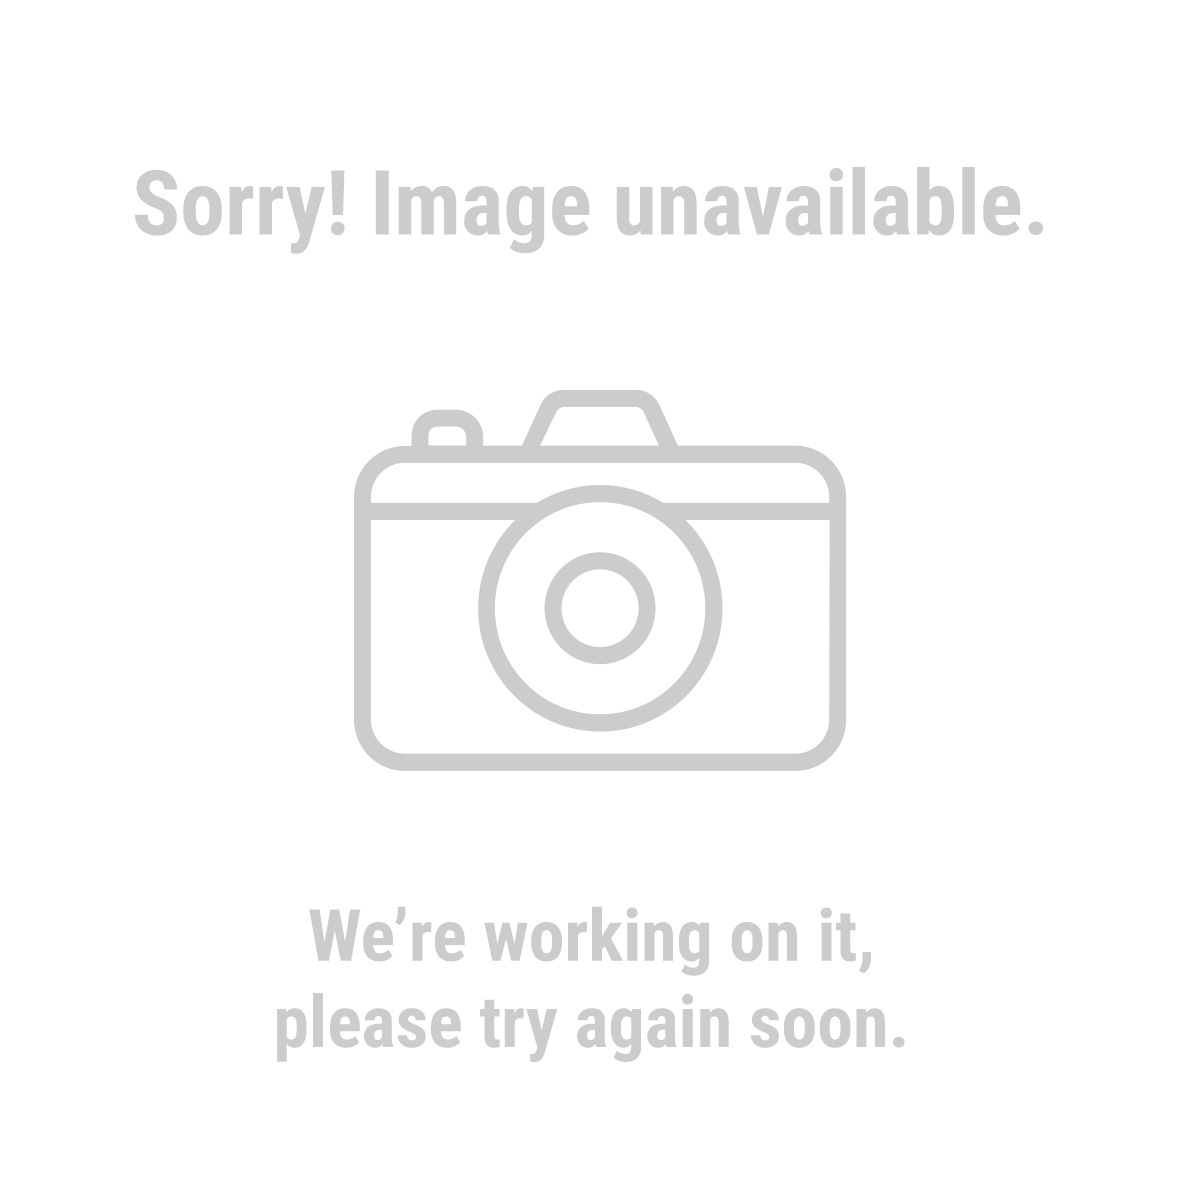 Slime 47614 Inner Tube Repair Kit